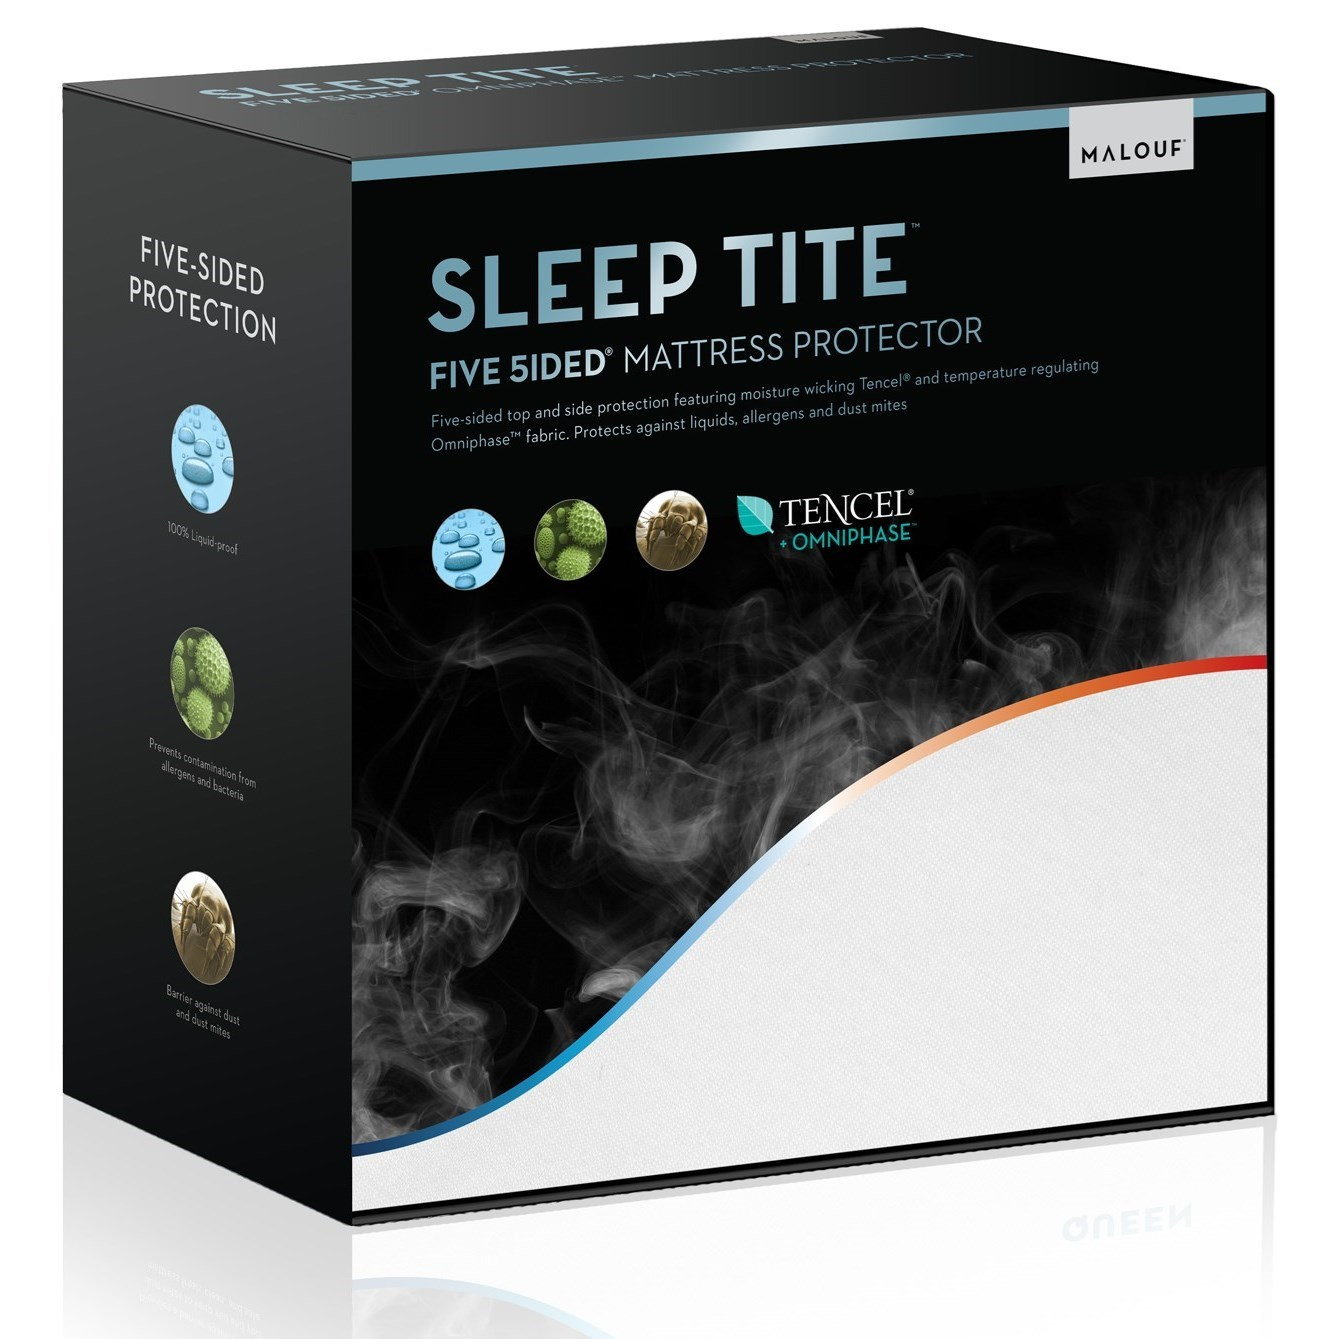 Malouf Five 5ided Omniphase Twin Five 5ided Mattress Protector - Item Number: SLOTTT5P